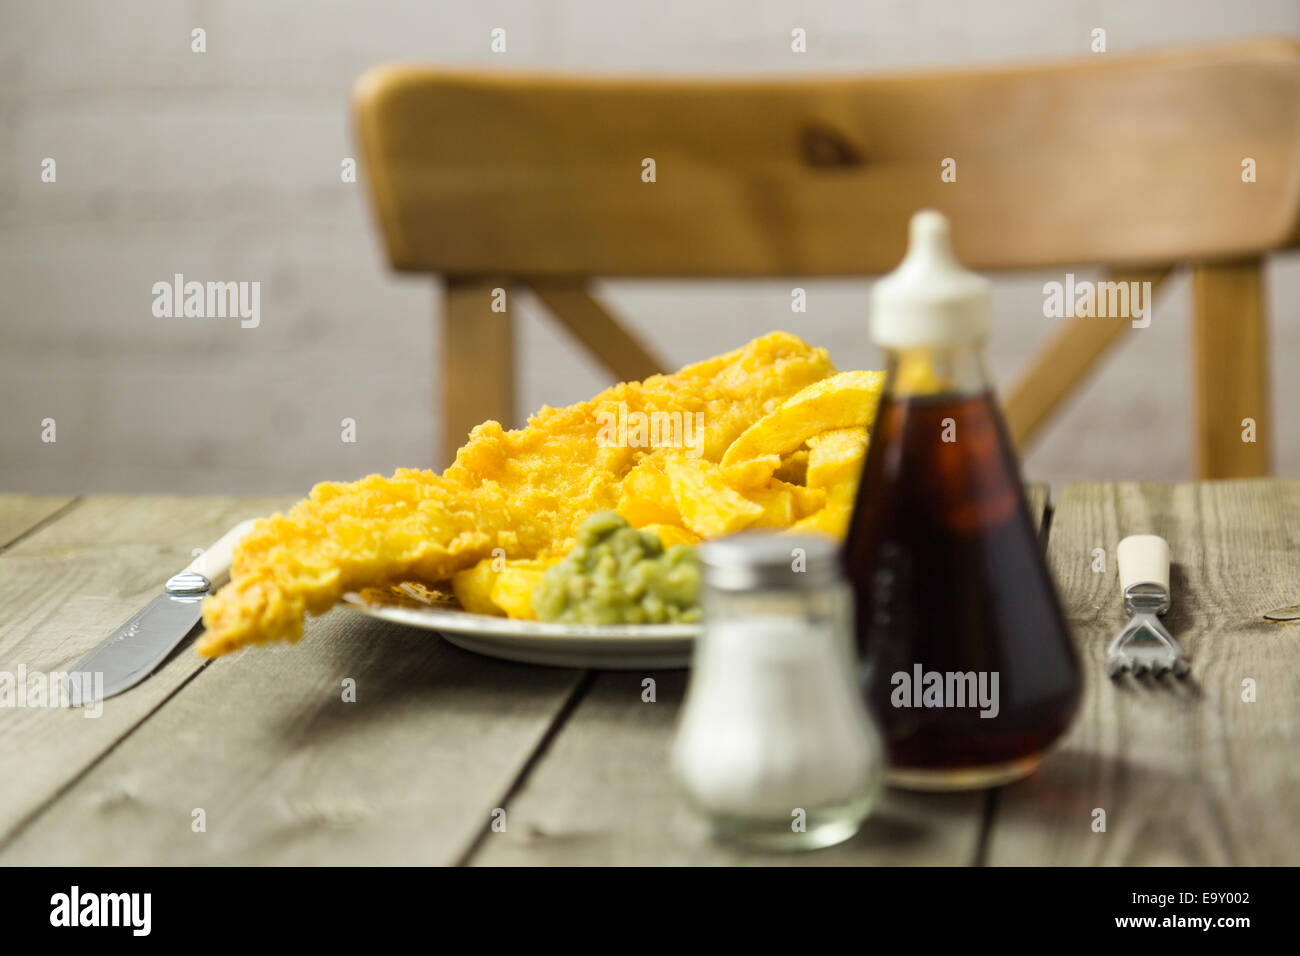 Traditional British takeaway meal of fish and chips with mushy peas on a newsprint plate - Stock Image